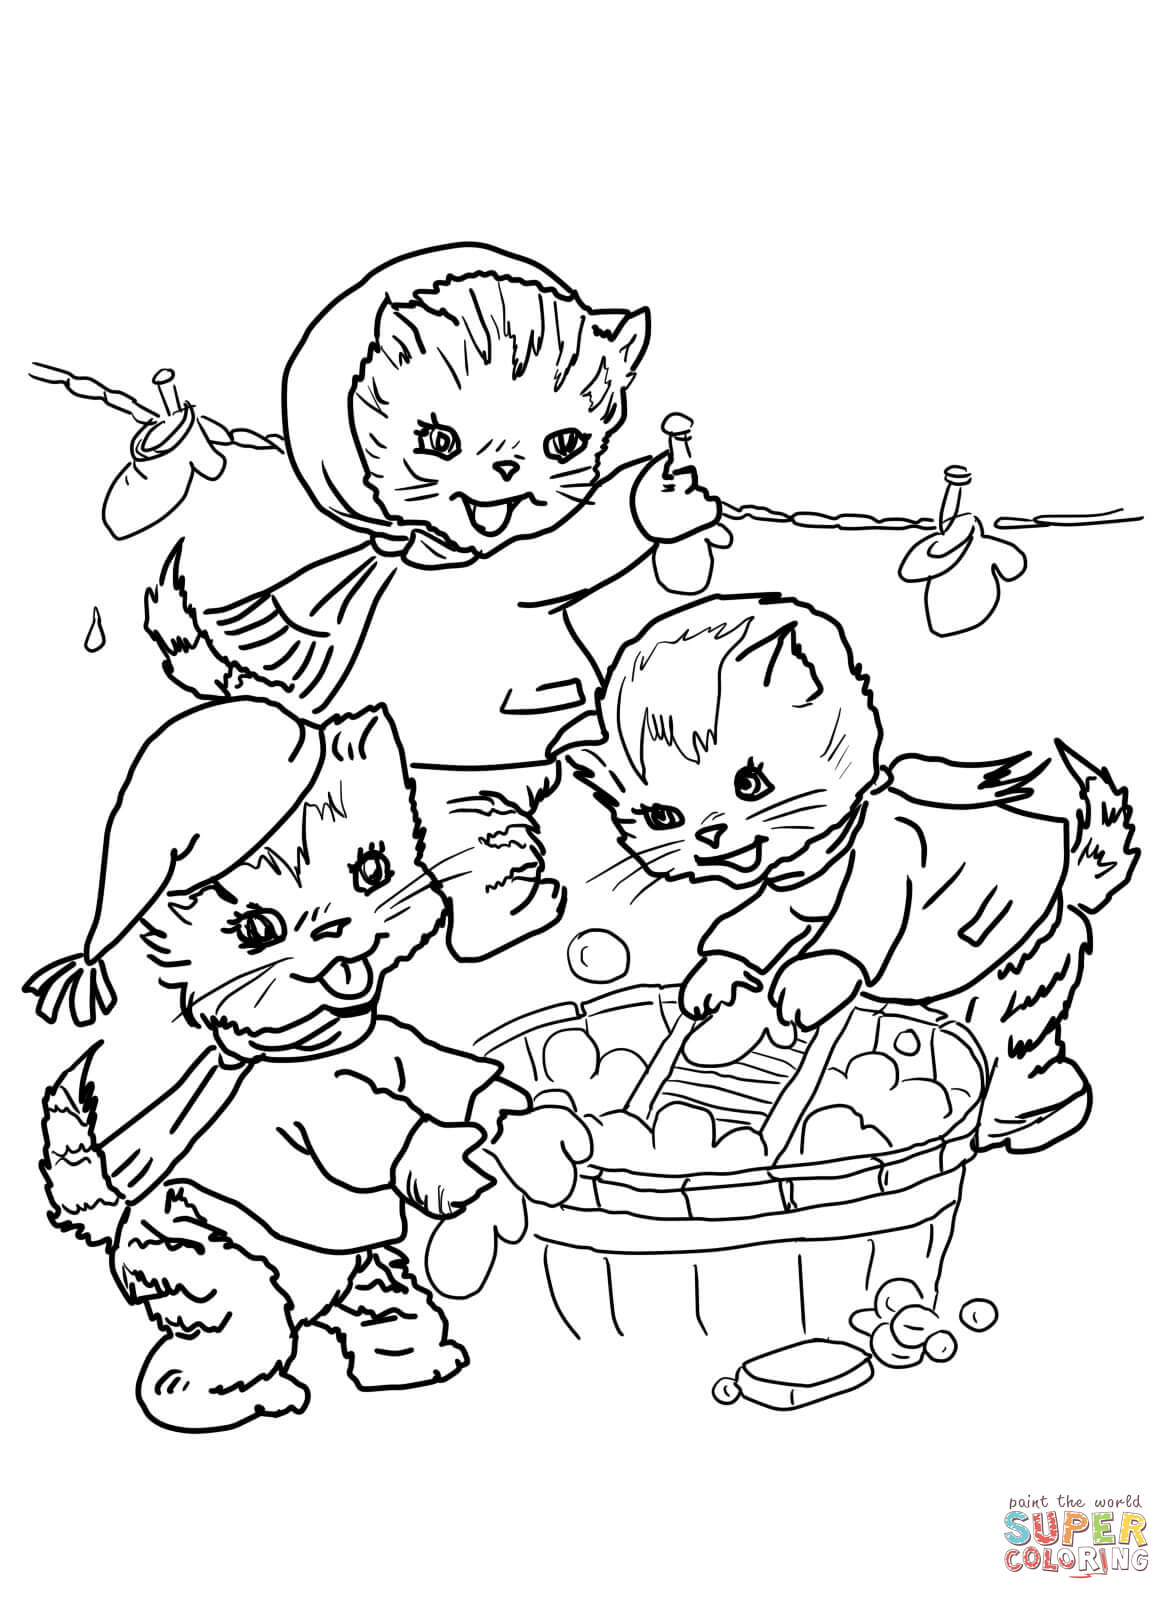 The Three Little Kittens They Washed Their Mittens